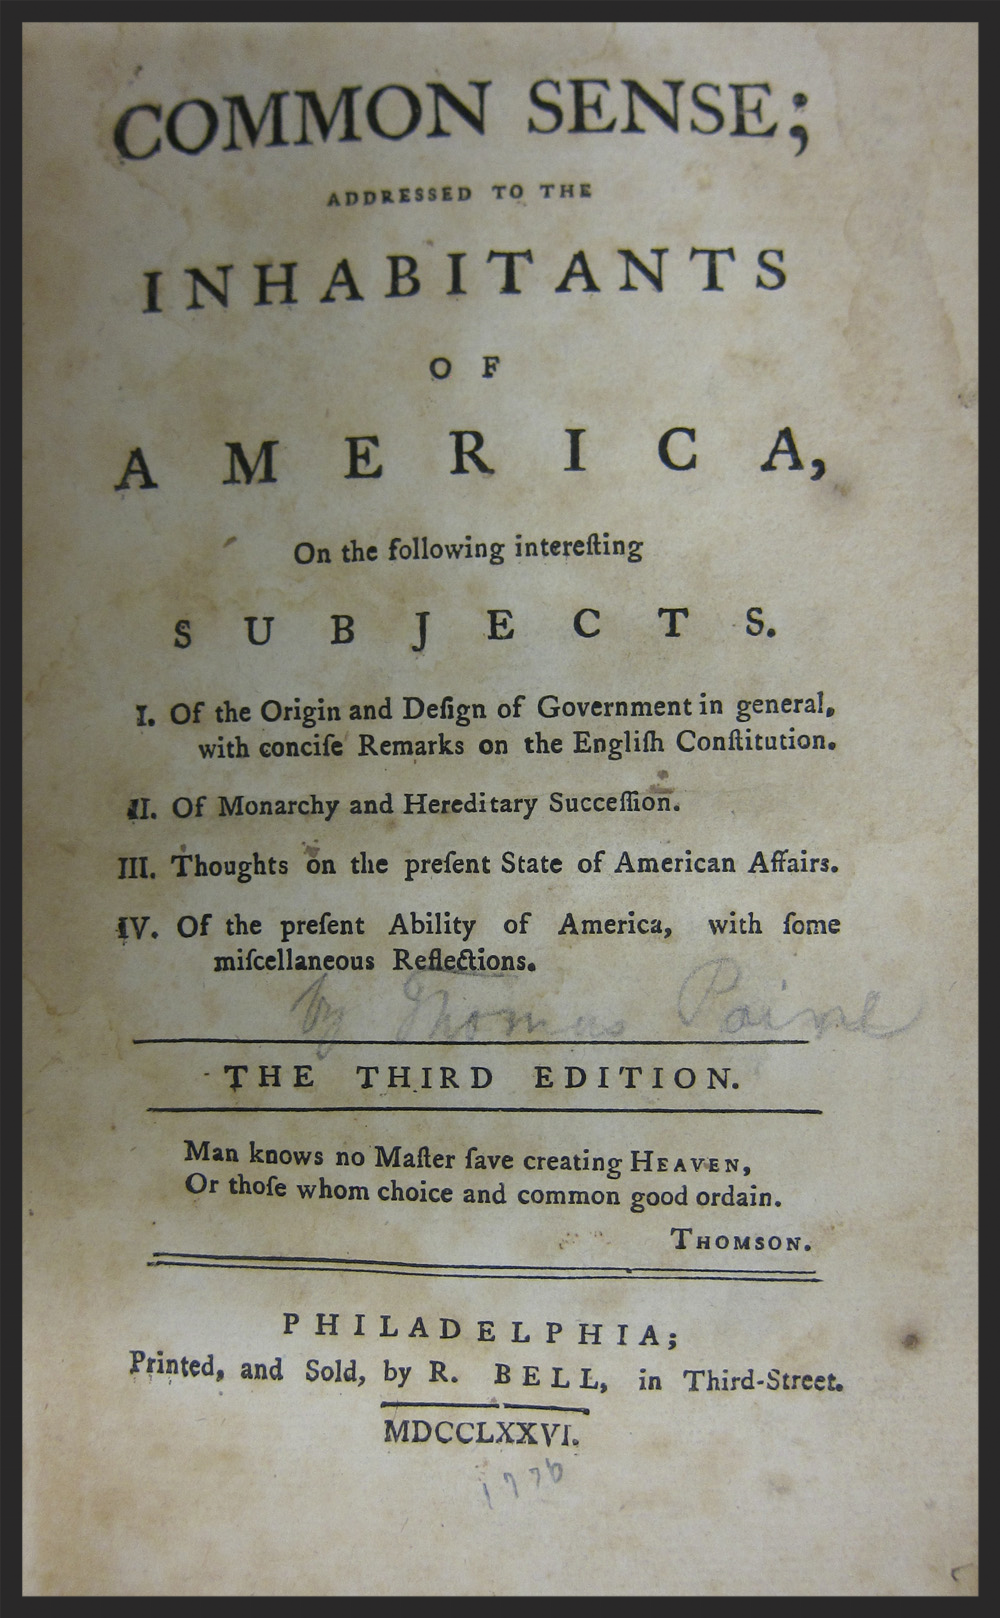 An original copy of Thomas Paine's Common Sense.